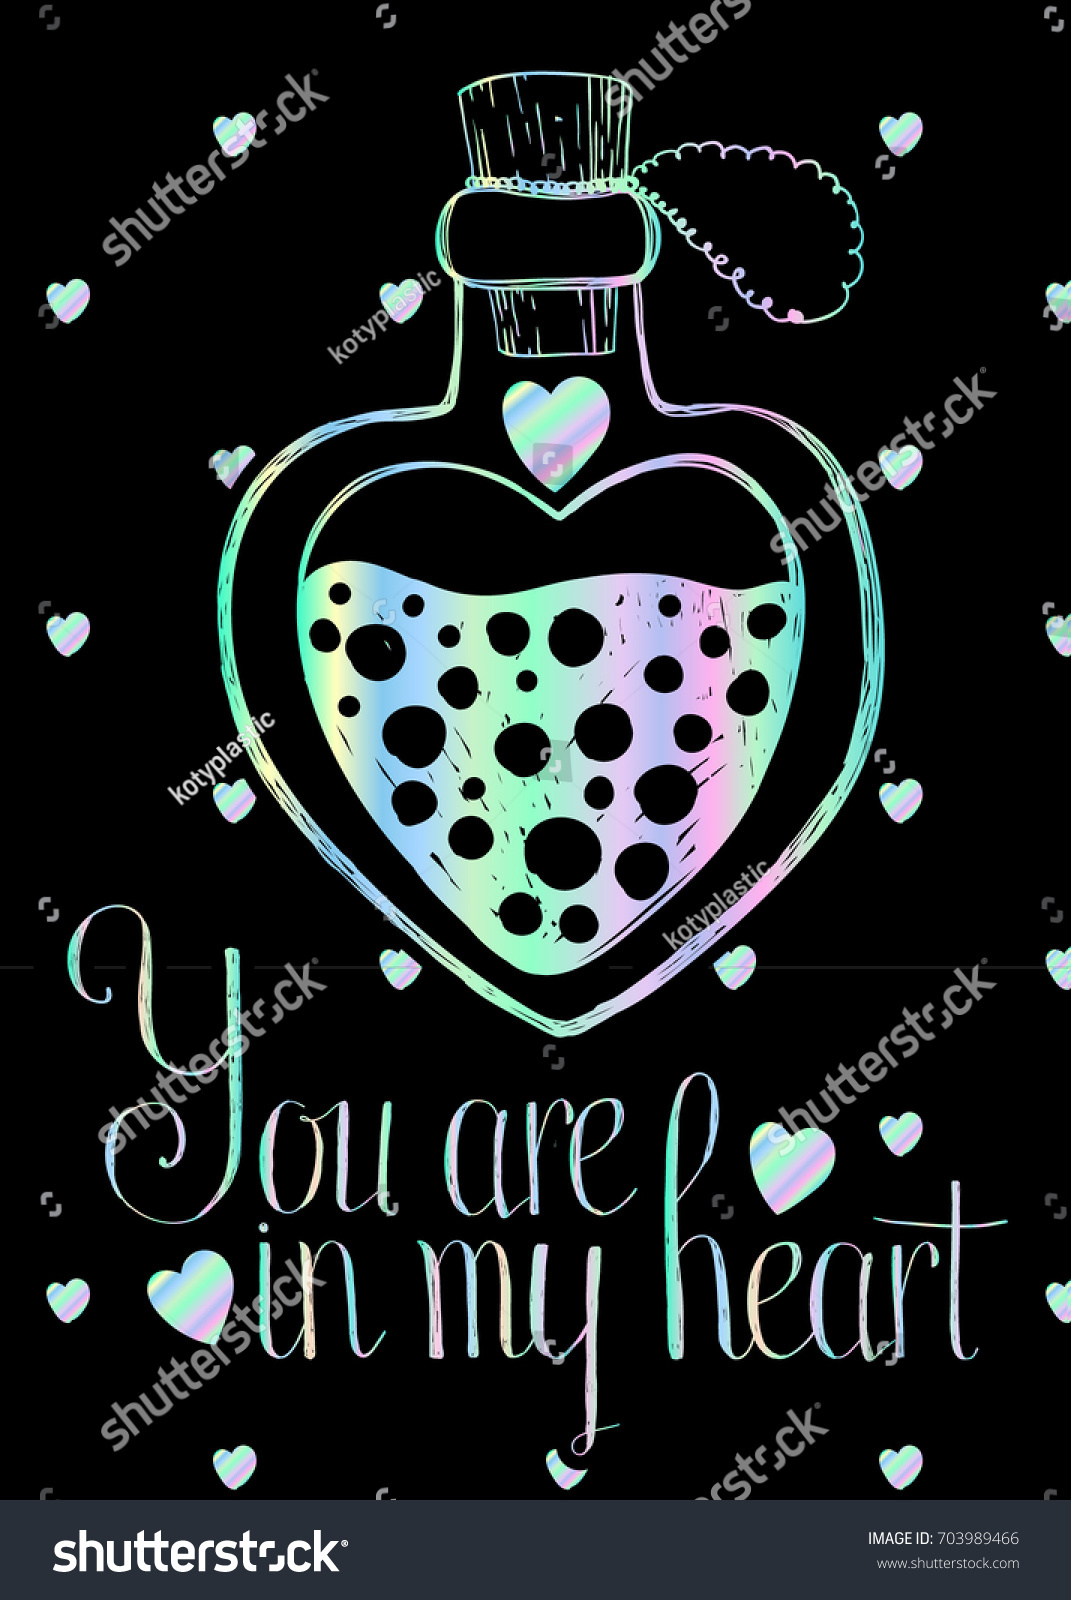 Lovely holographic greetings card on black stock vector 703989466 lovely holographic greetings card on black background with holographic magic heart shaped bottle vector template kristyandbryce Gallery